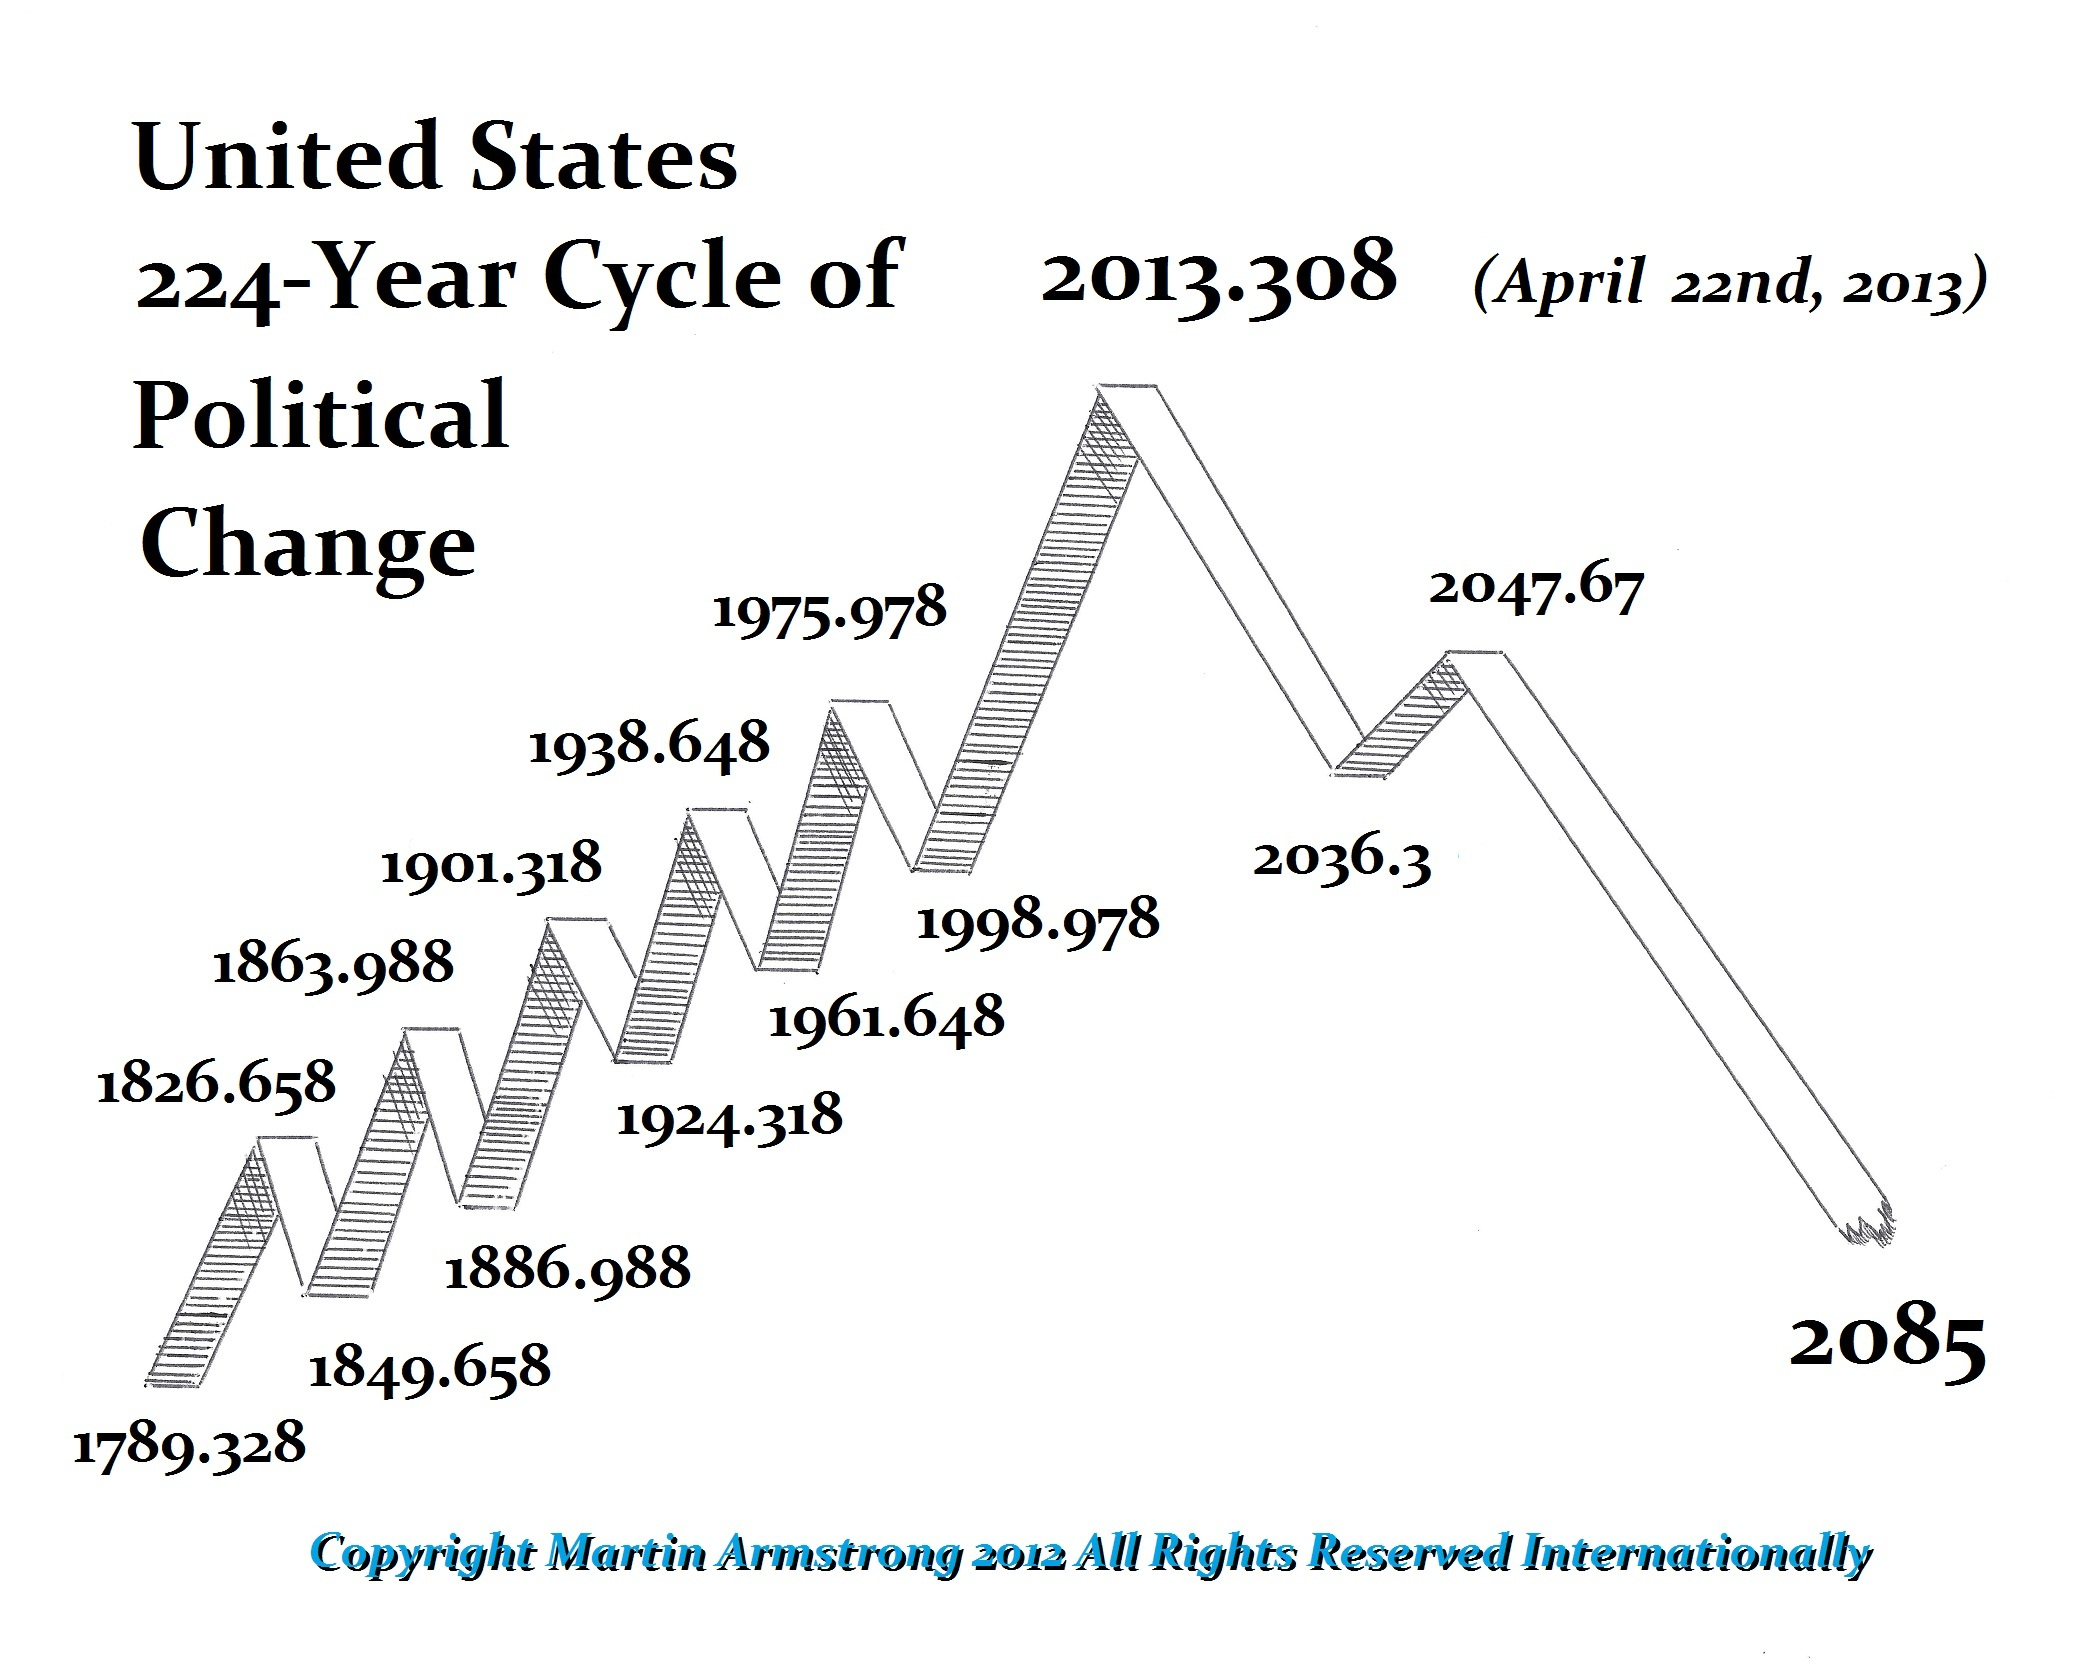 http://i0.wp.com/armstrongeconomics.com/wp-content/uploads/2014/10/us-224-cYCLE-2013.jpg